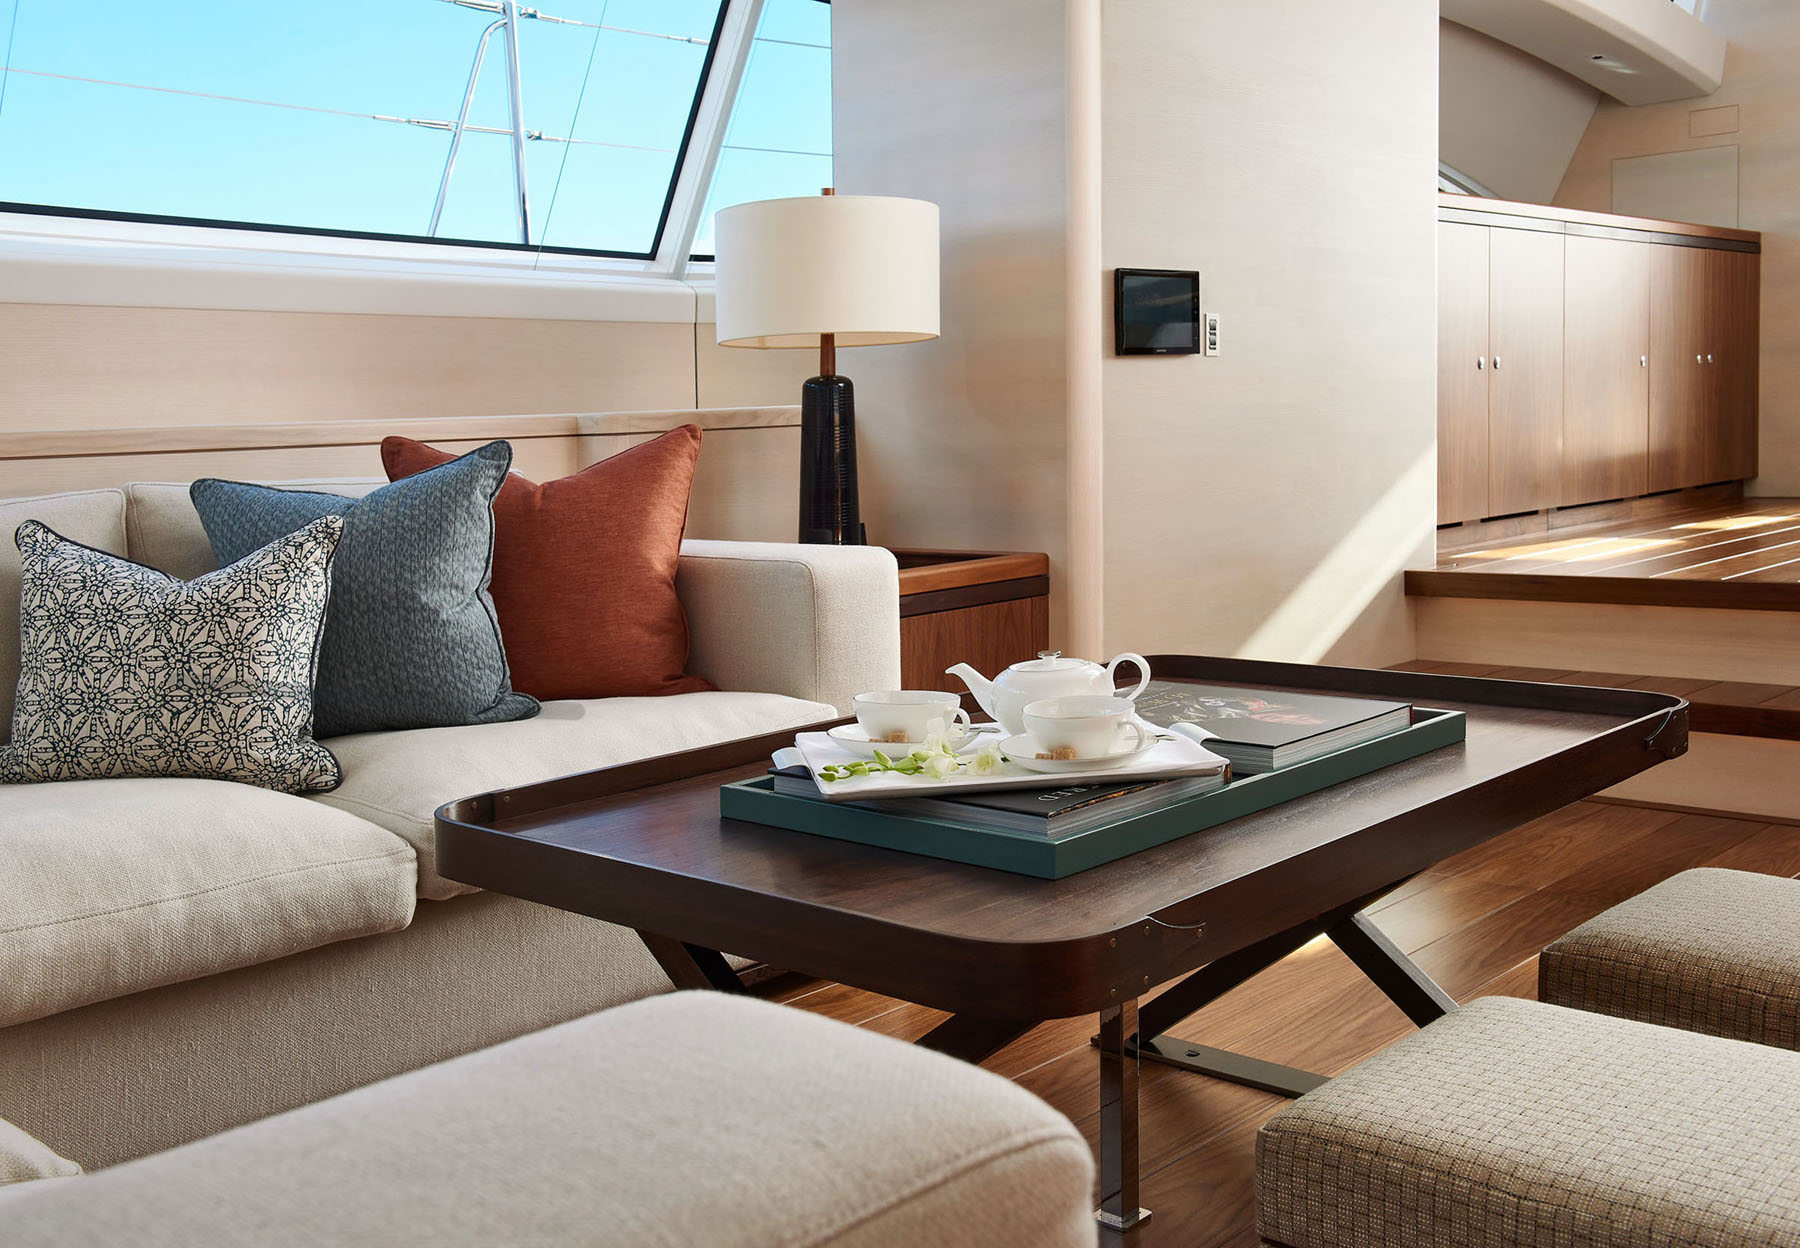 Interior image showing the salon onboard the S/Y Archelon